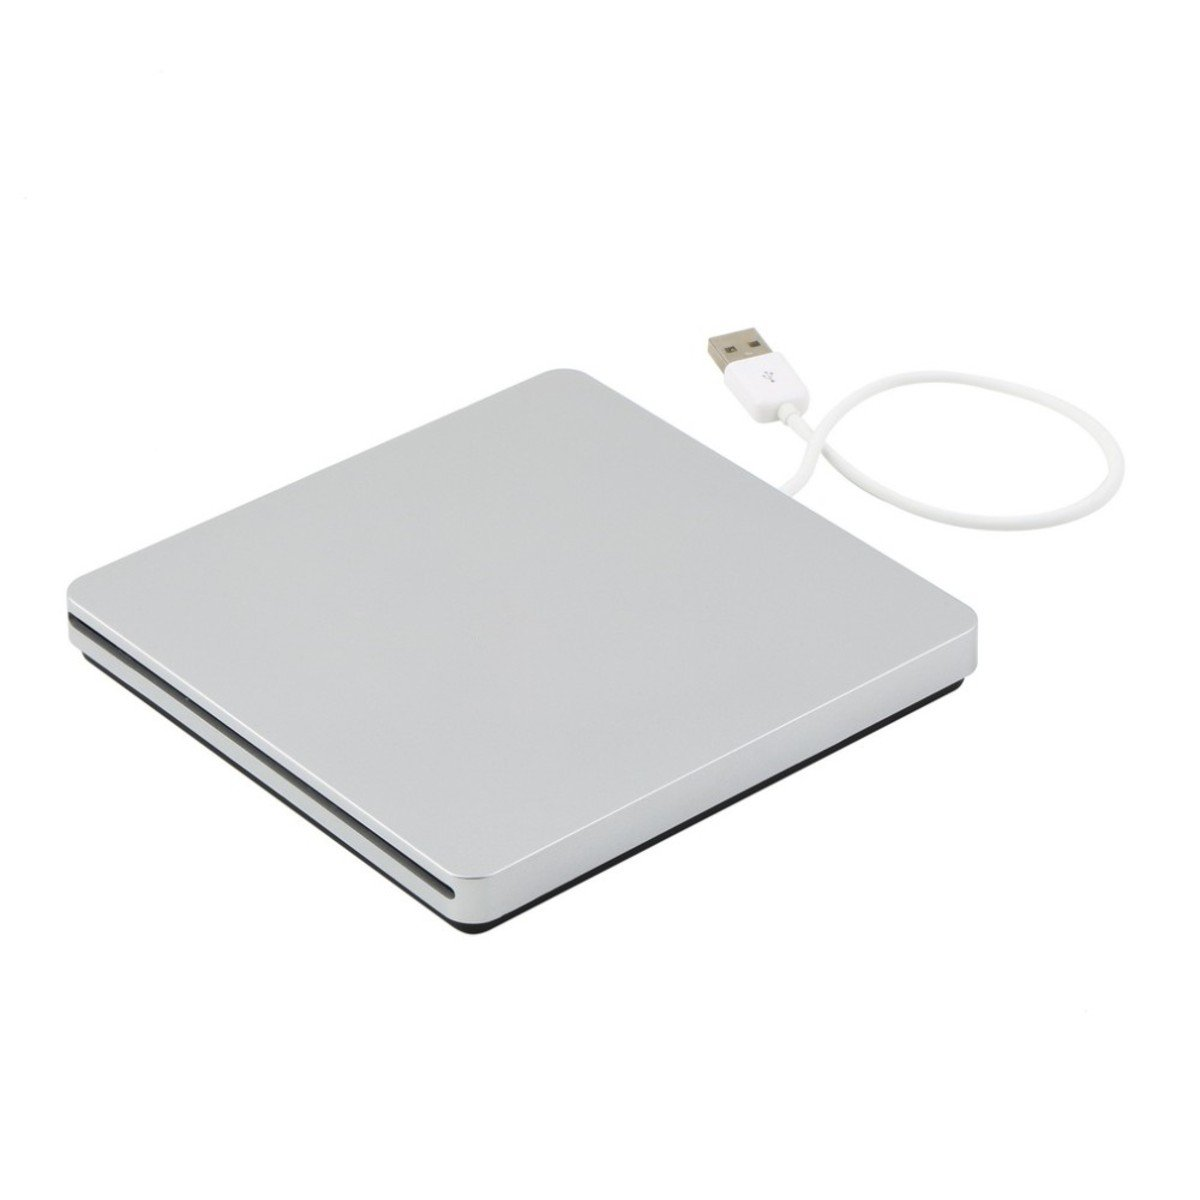 Slot-in DVD/CD Writer Drive(Silver)